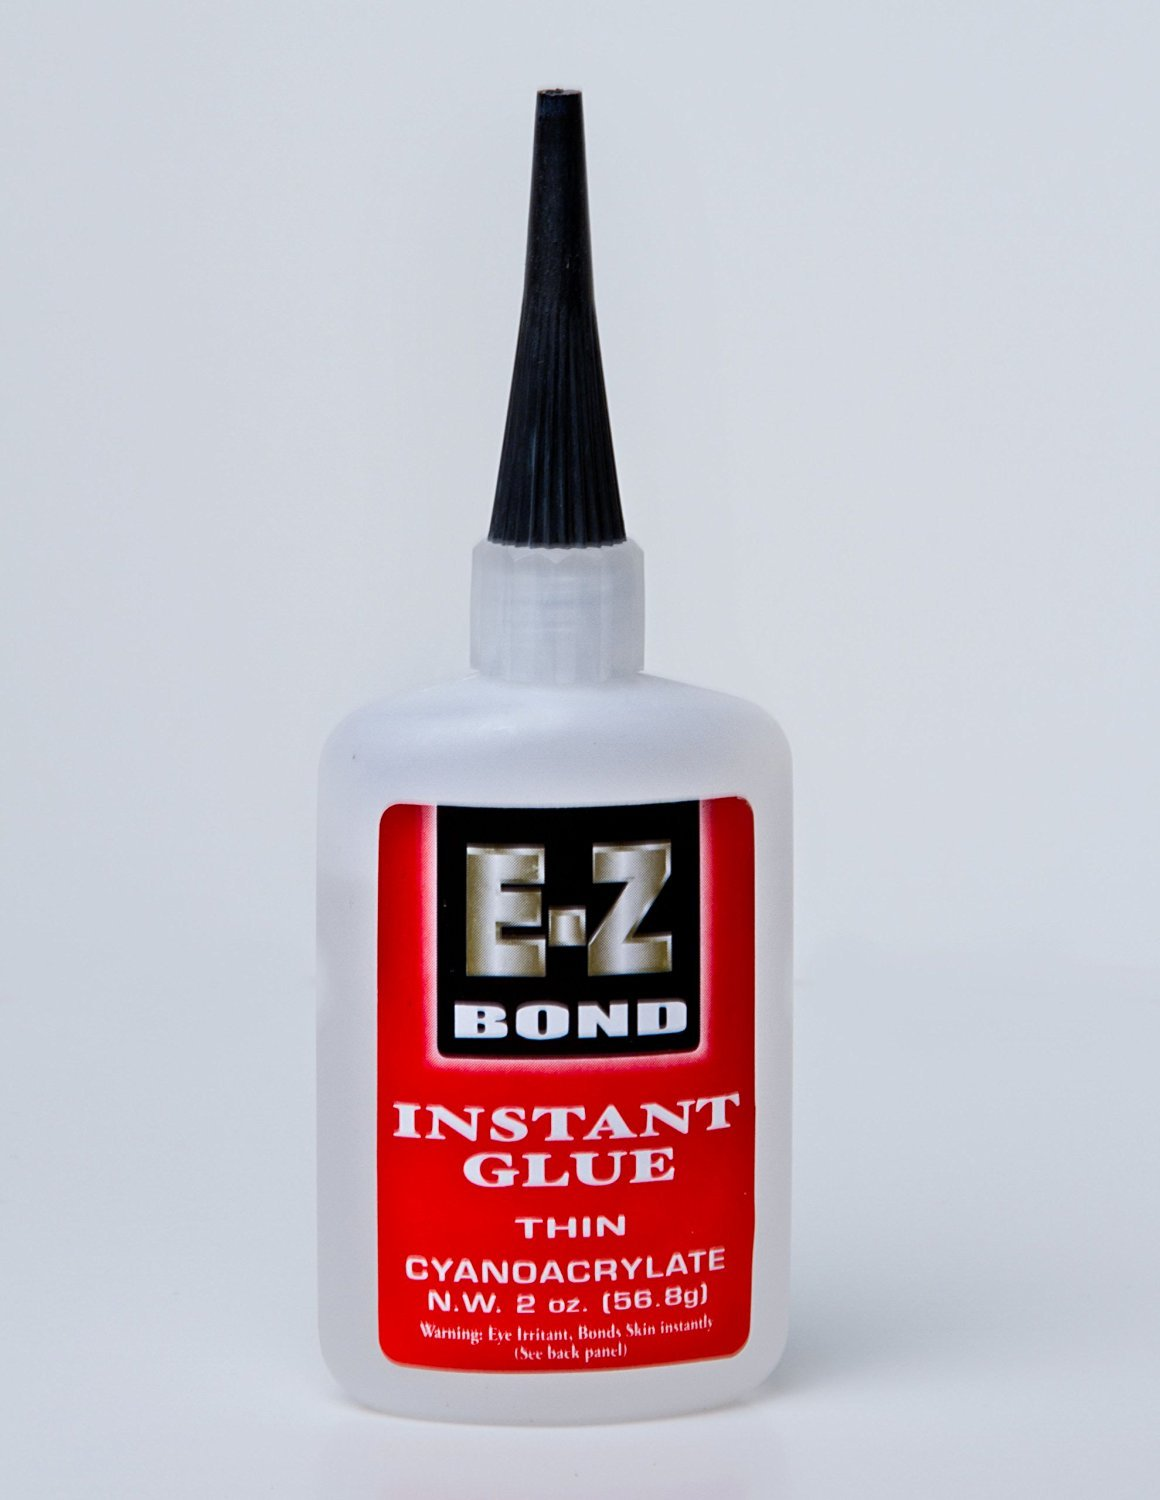 Premium Super Glue - Best Cyanoacrylate Adhesive - Strongest Bond on the Market - Doesn't Clog - Lifetime Guarantee - Perfect Wood and Shoe Glue - Less than a Minute Cure Time - Works Excellent with Metal, Plastic, Ceramics & More. 2 oz, 50 CPS.